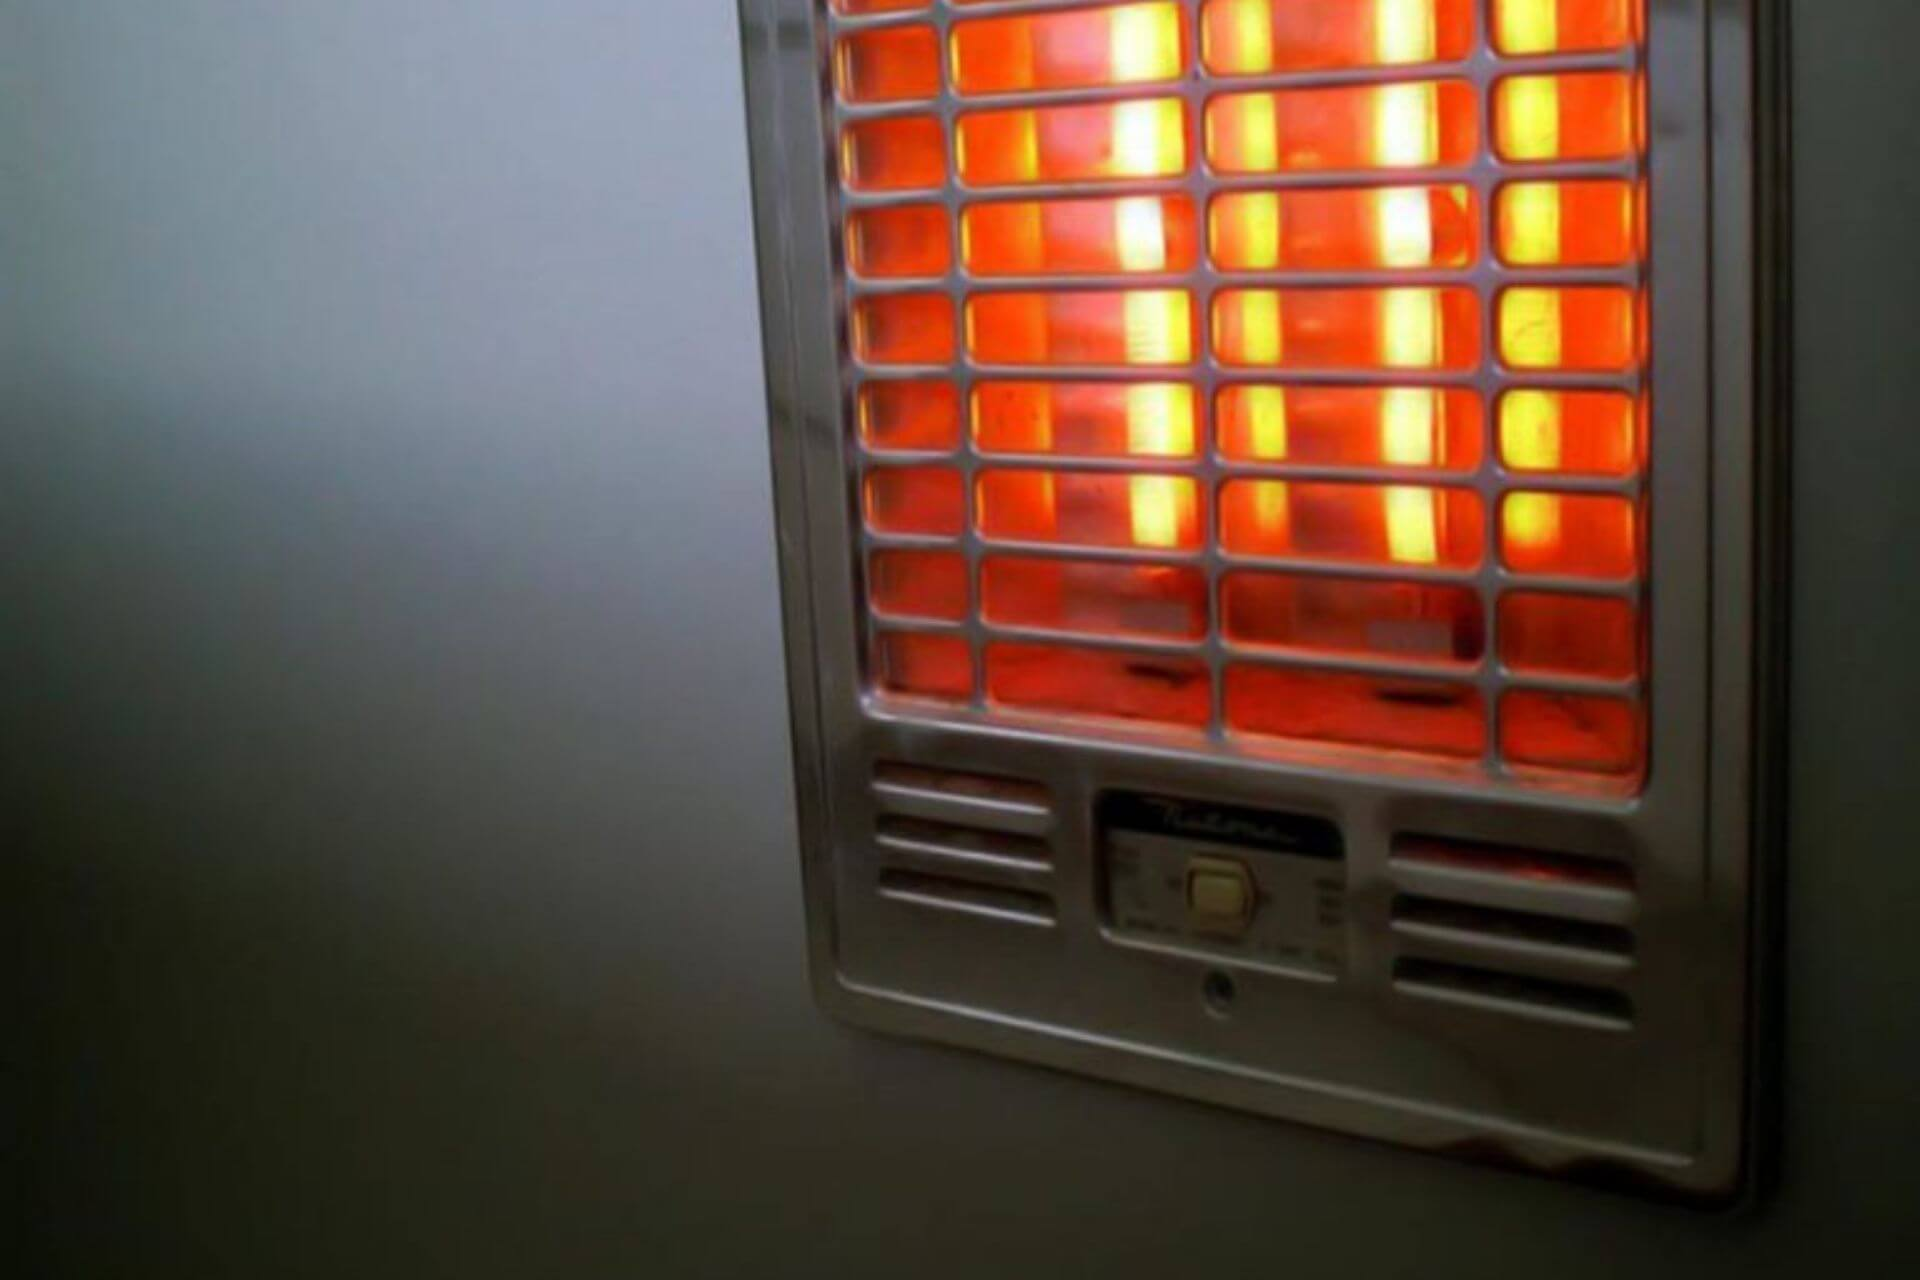 Electric Wall Heaters For Cooling And Warming Up A Cold Room